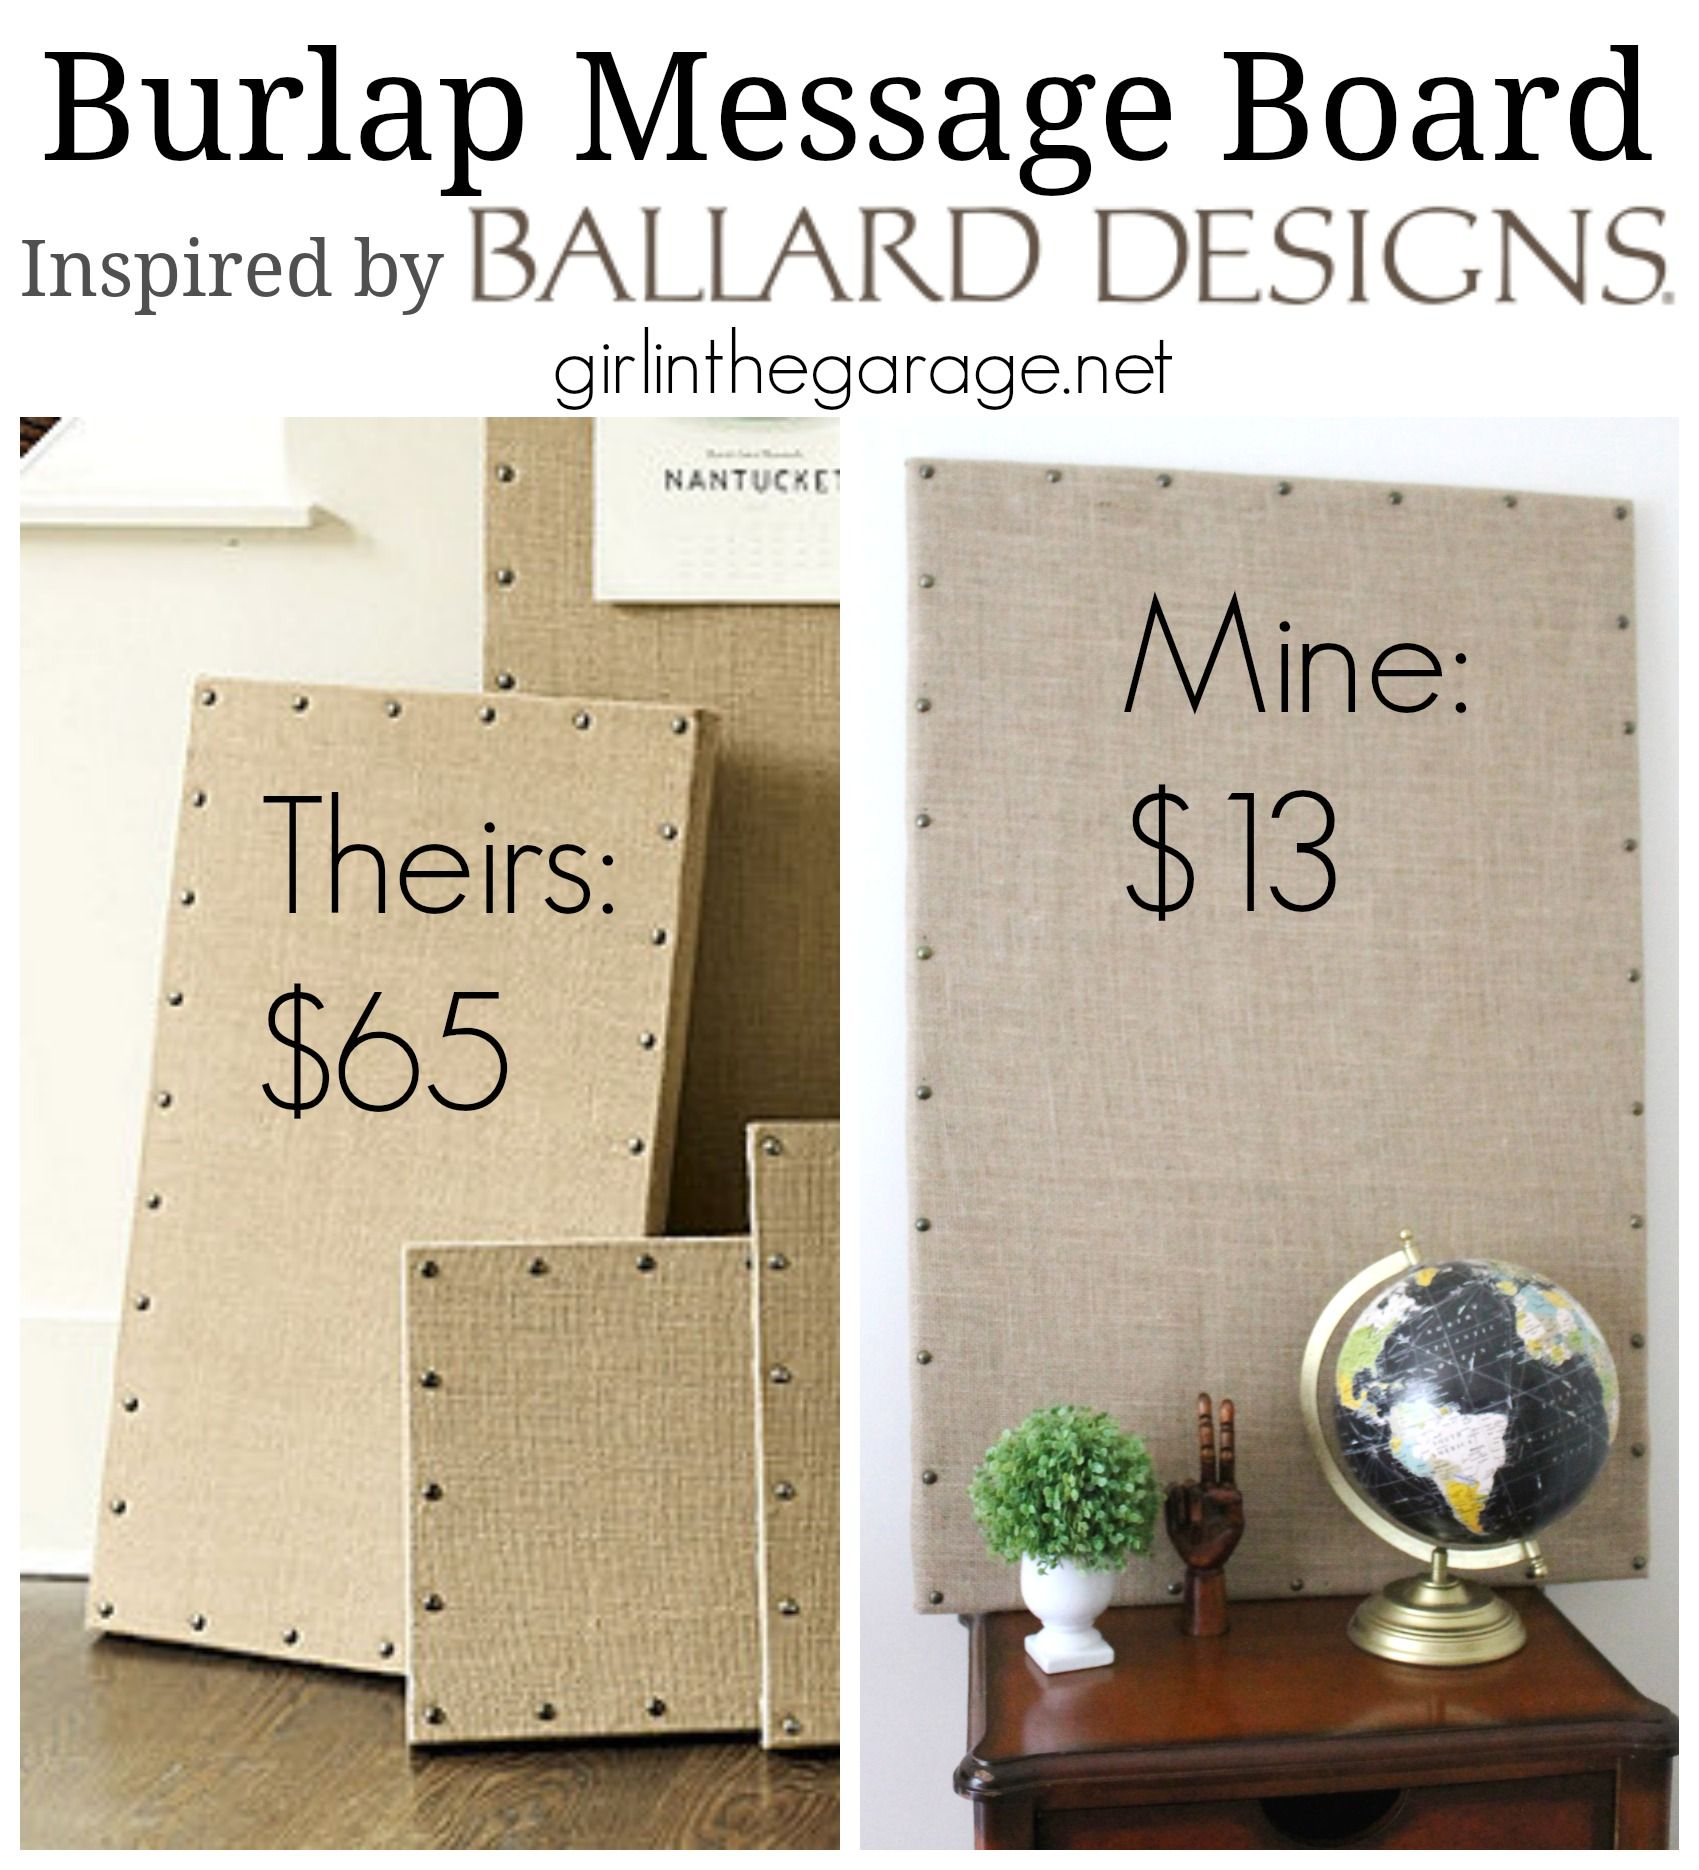 burlap message board inspired by ballard designs message board burlap message board inspired by ballard designs